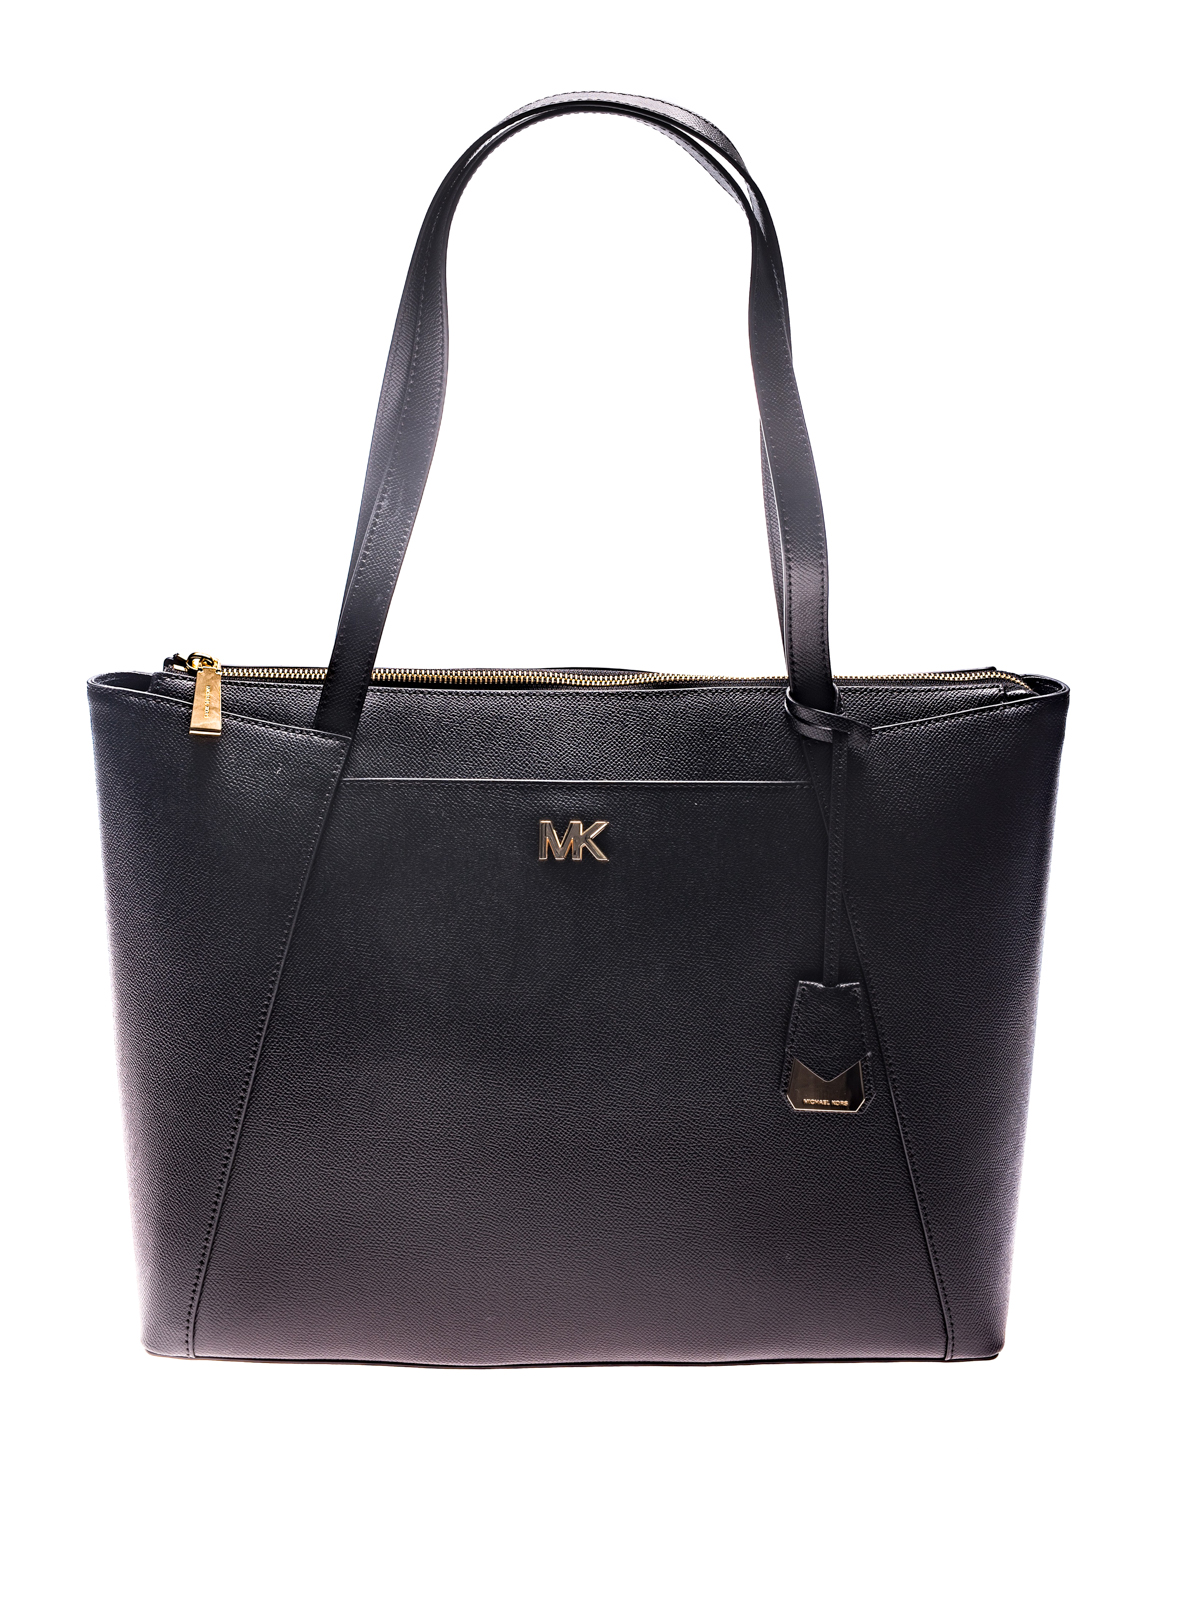 1a7193d0c8dc40 Michael Kors Maddie Tote Black | Stanford Center for Opportunity ...